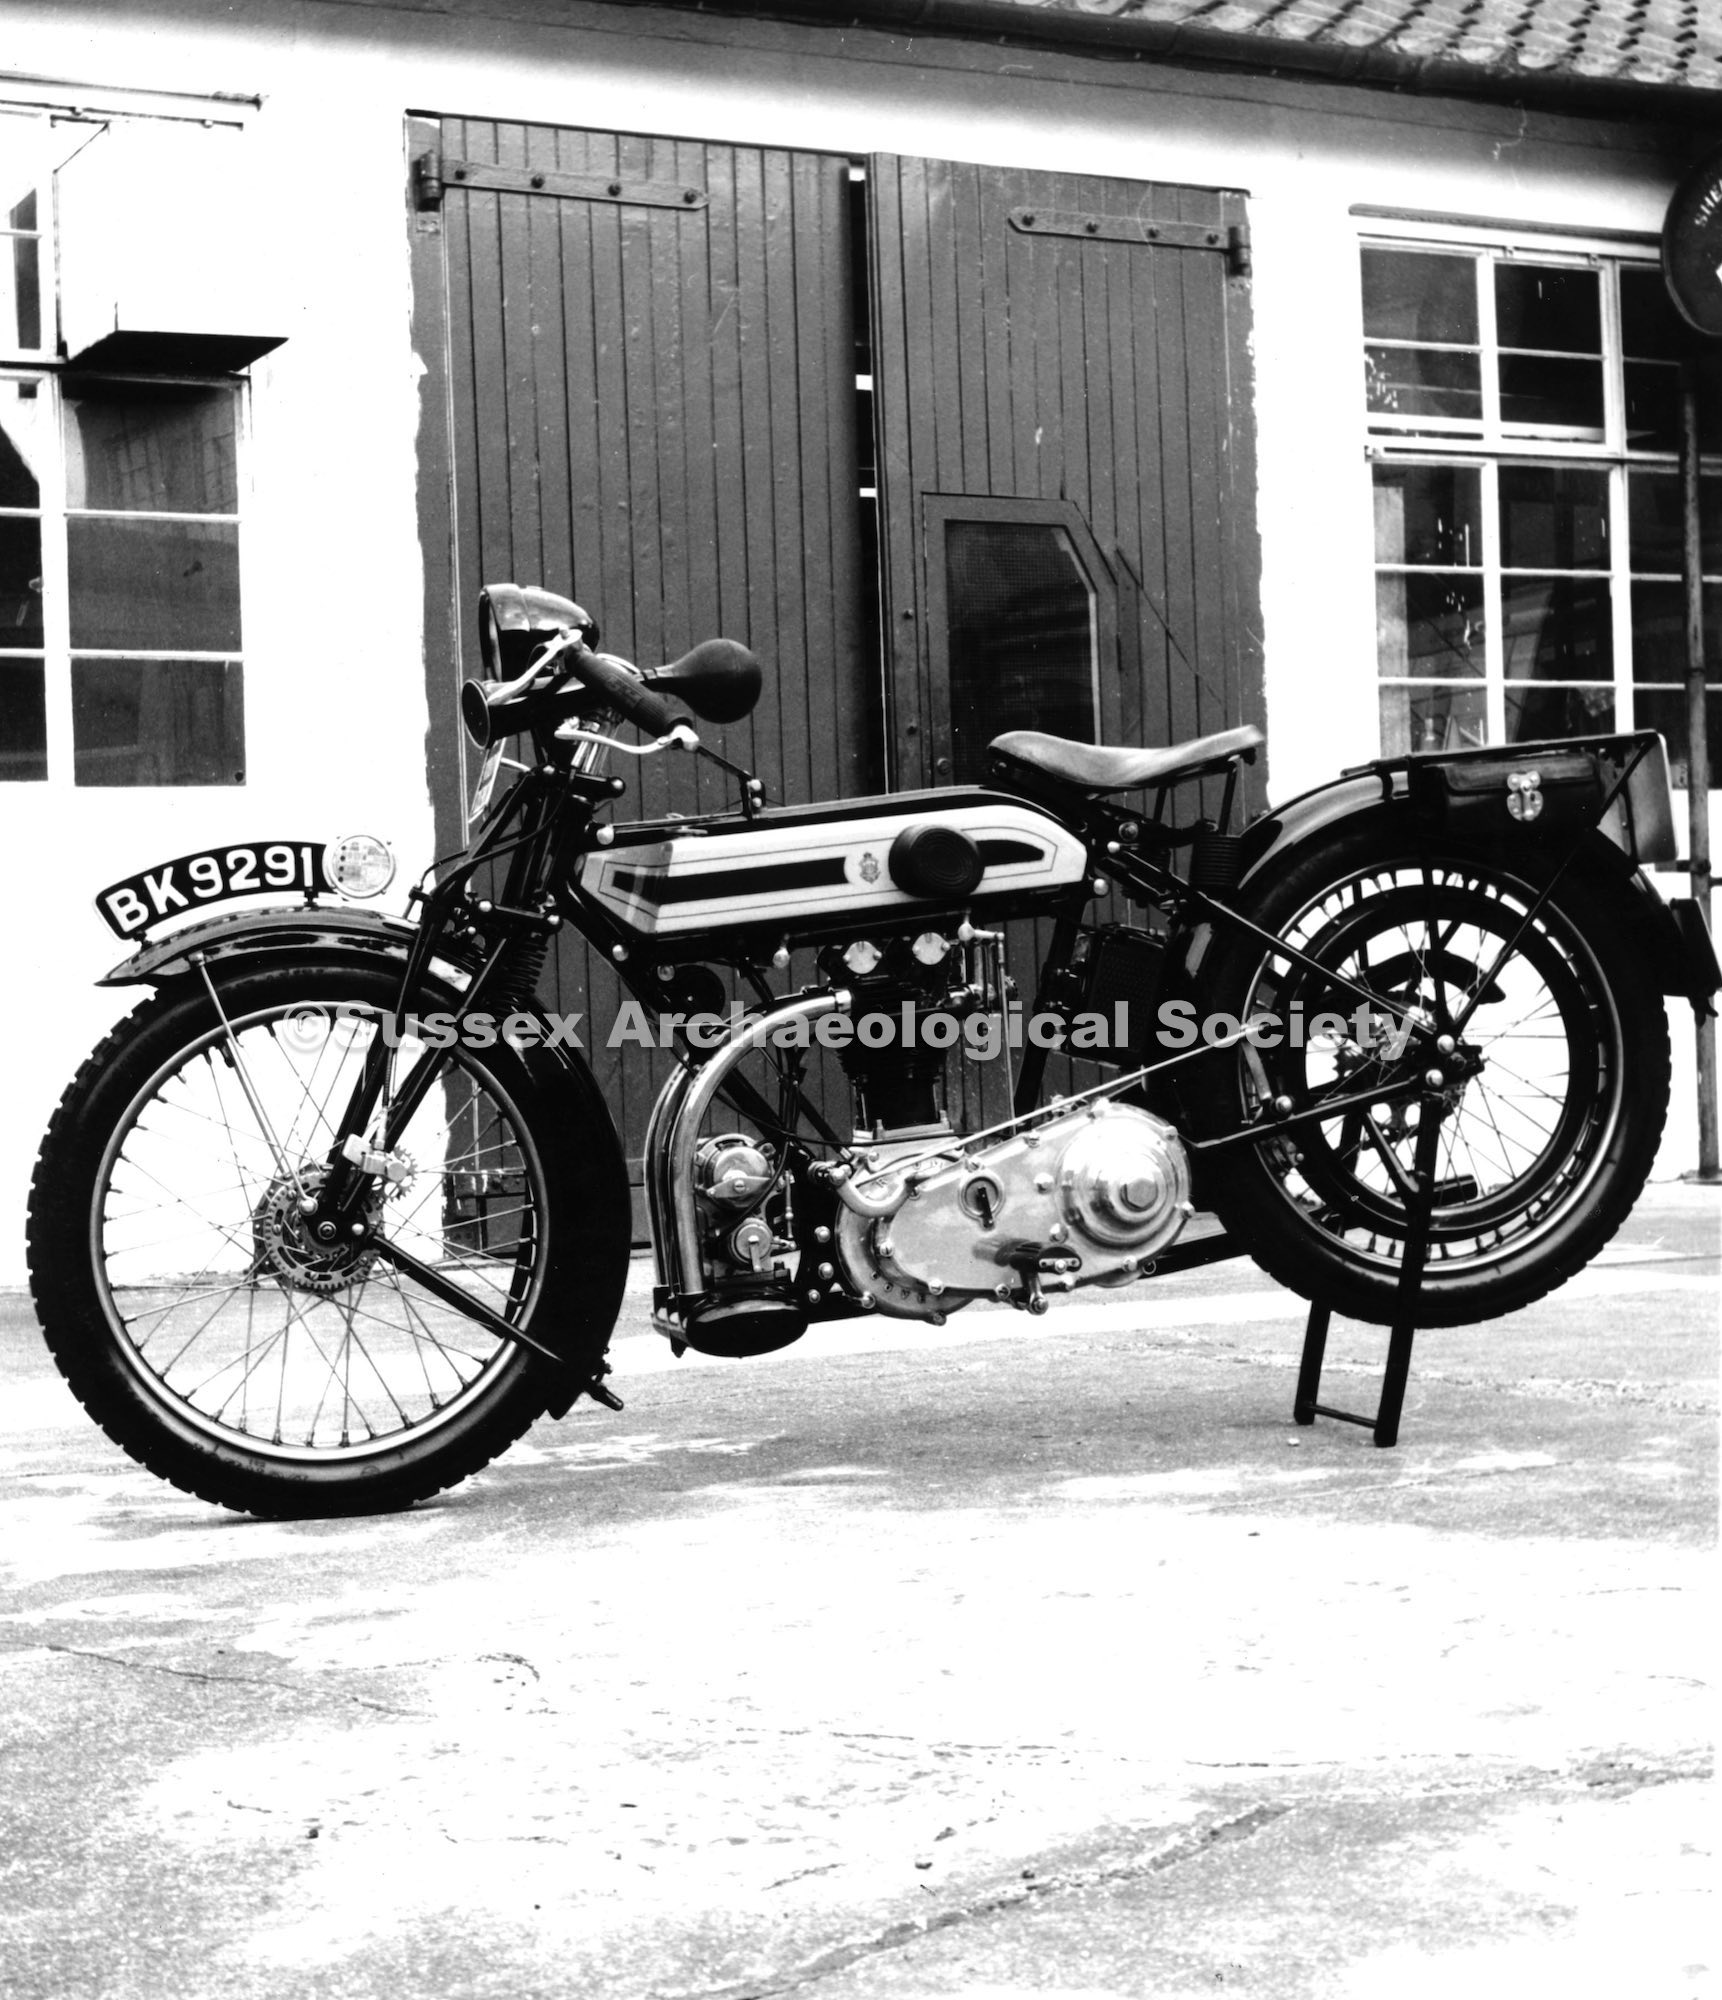 Photo galleries archives shorehambysea 891470 triumph motor cycle with ricardo designed engine lancing bulb horn reg no bk9291 restored at ricardo consulting engineers bridge works malvernweather Gallery